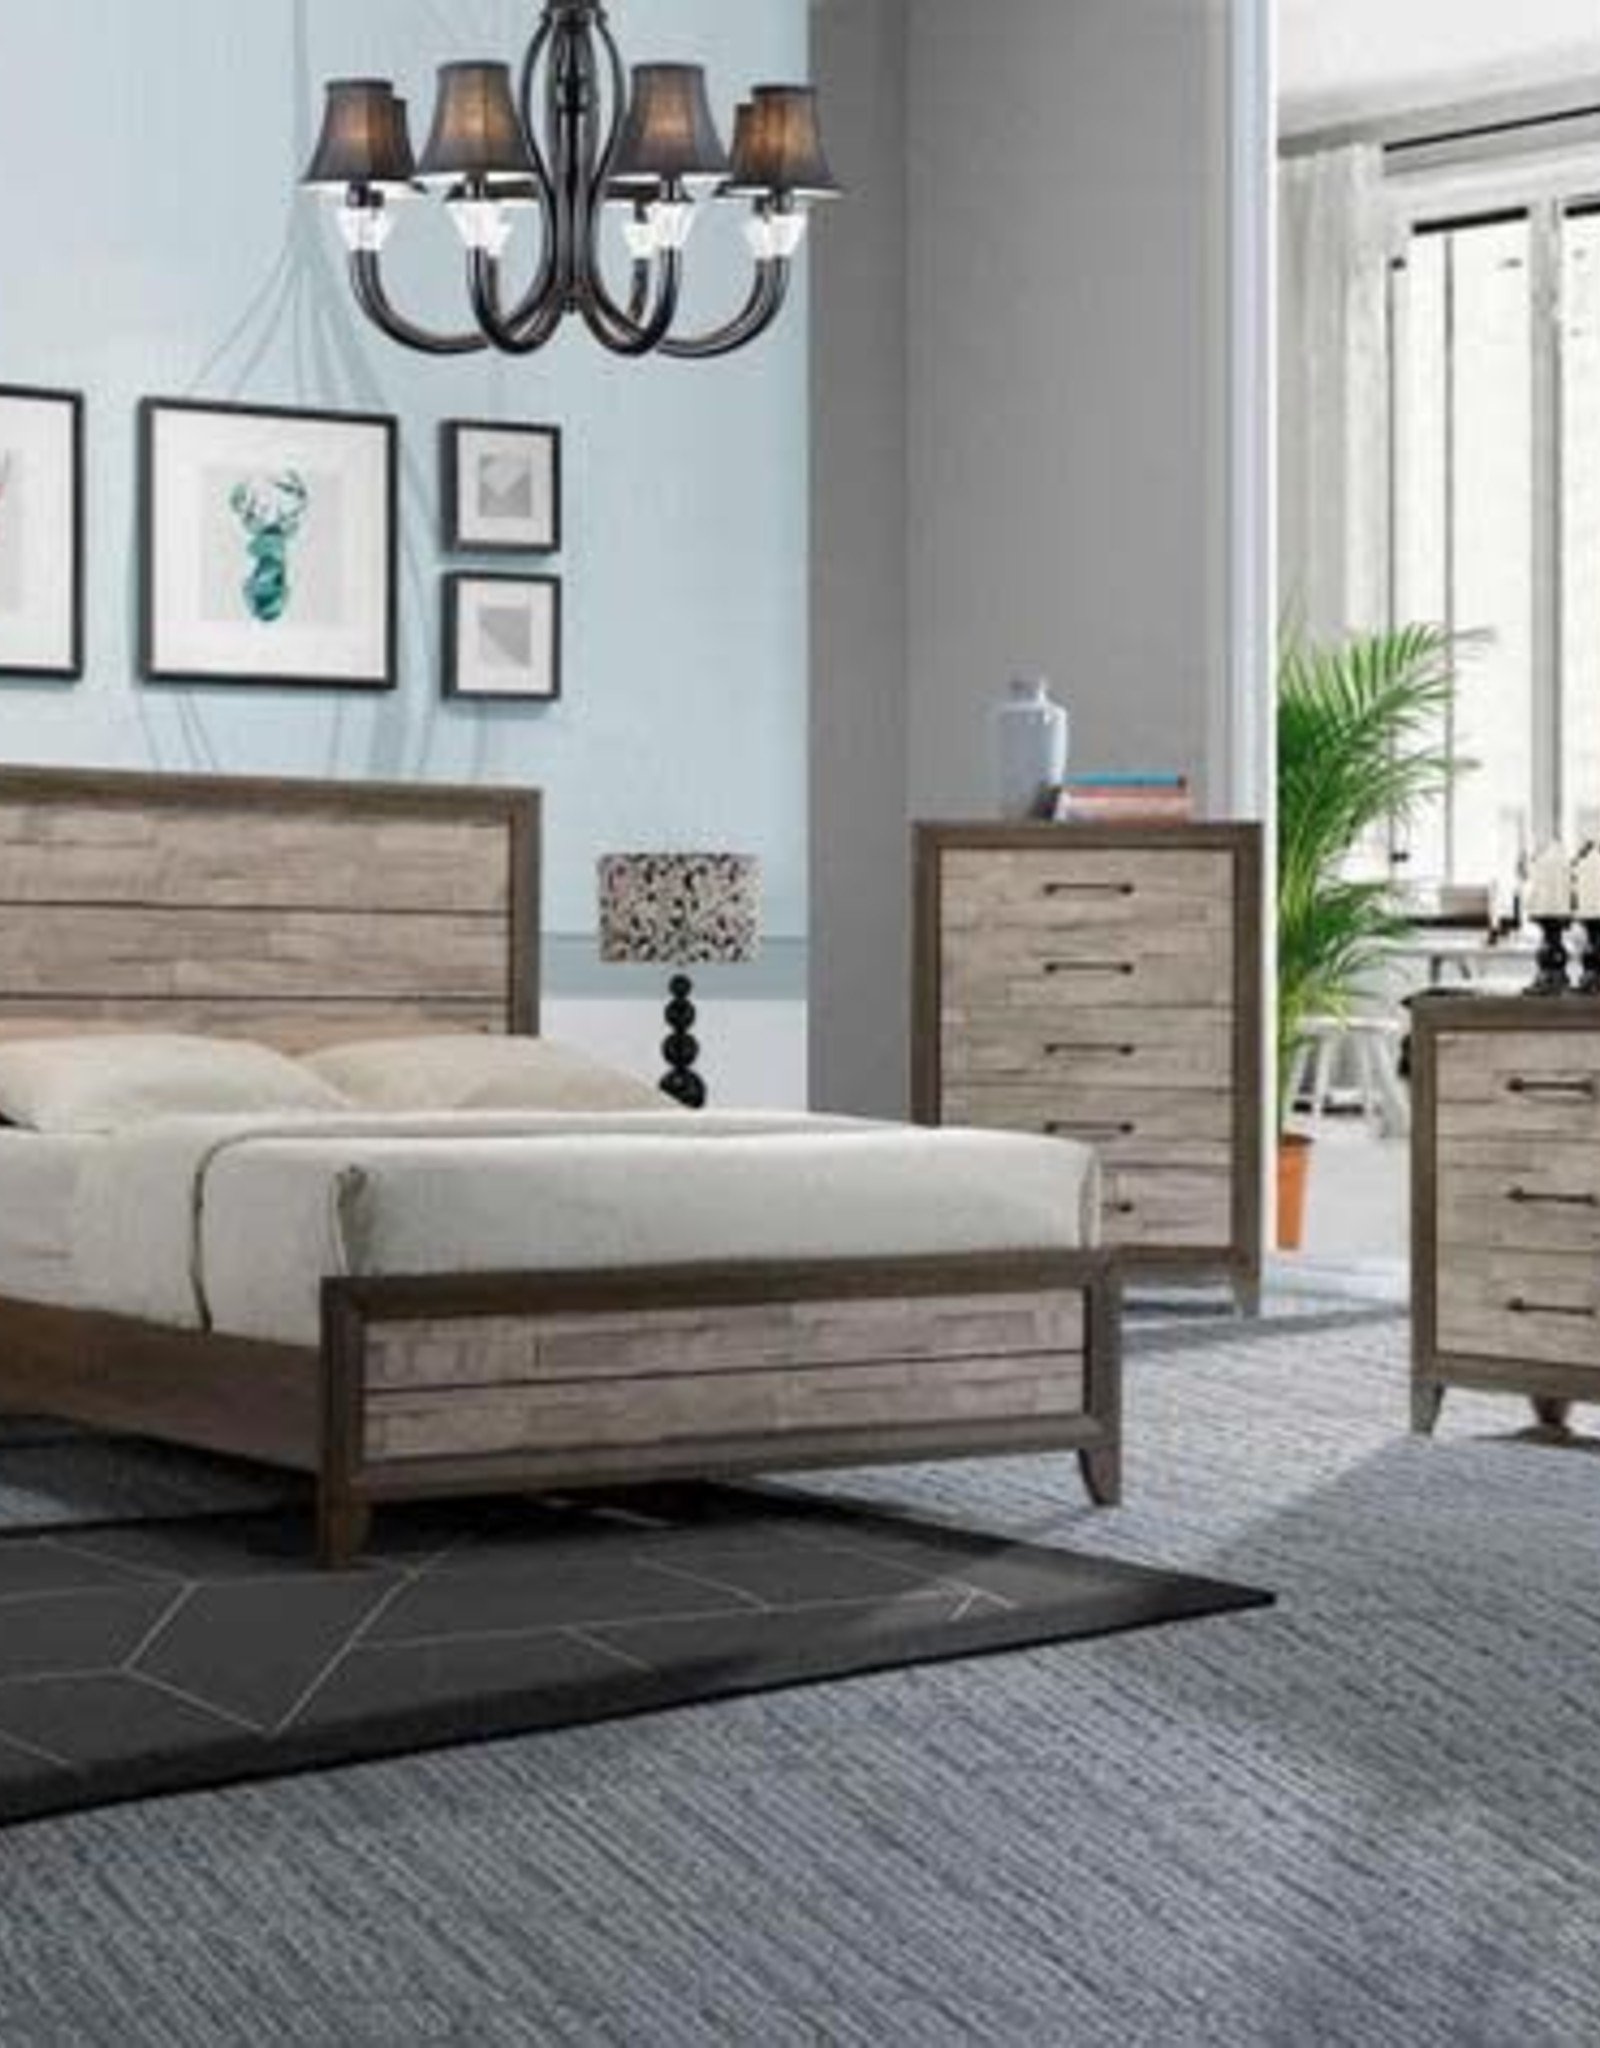 Crownmark Jaren Bedroom Set - Queen Size